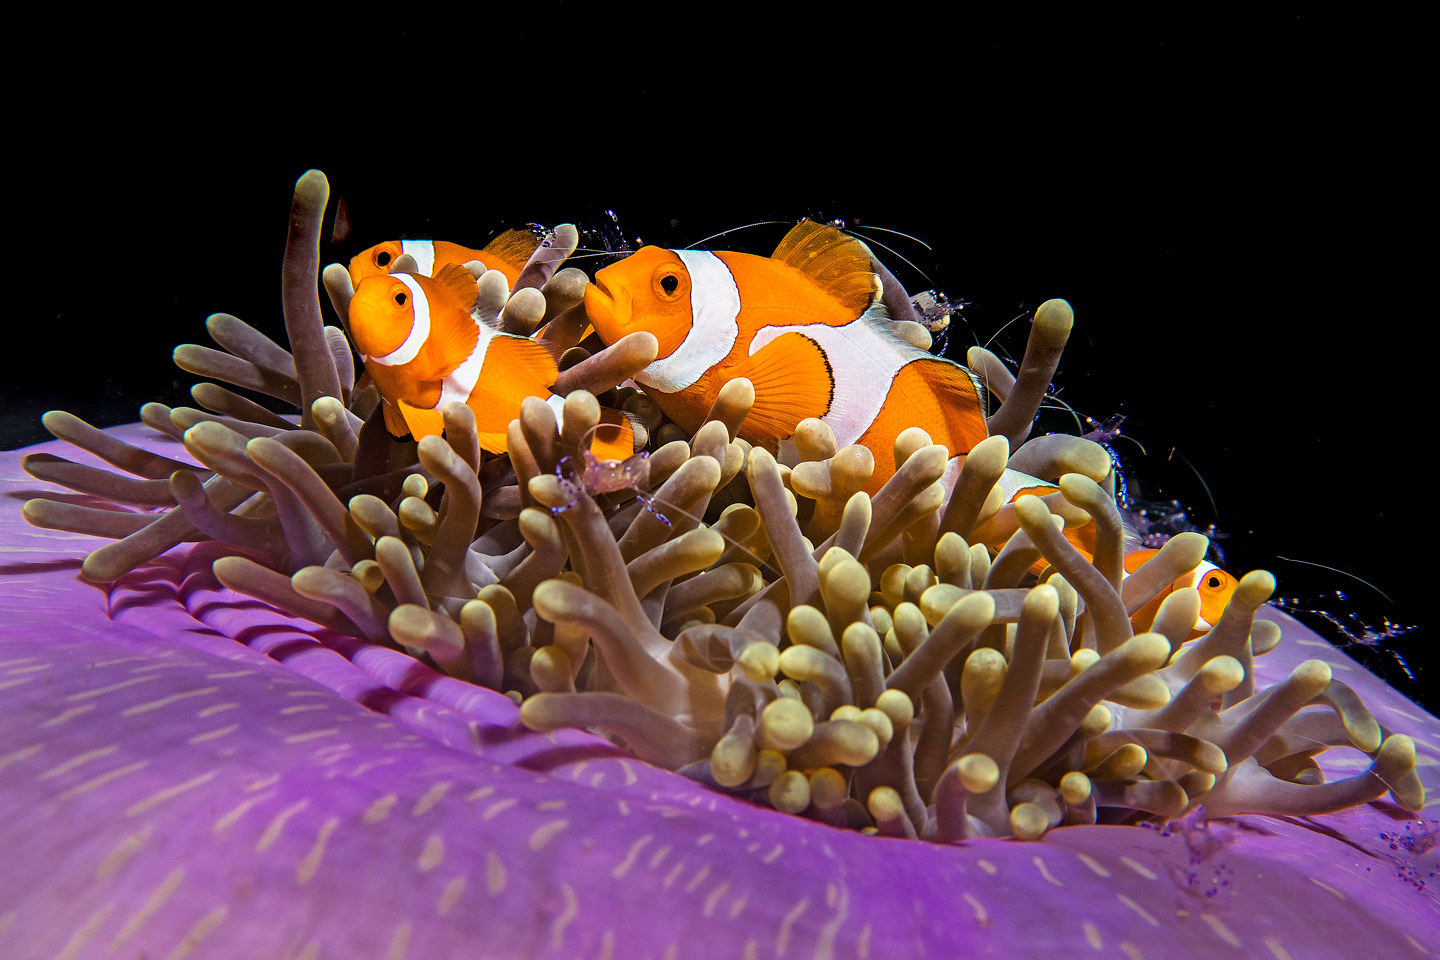 Clown fish in Raja Ampat, Indonesia